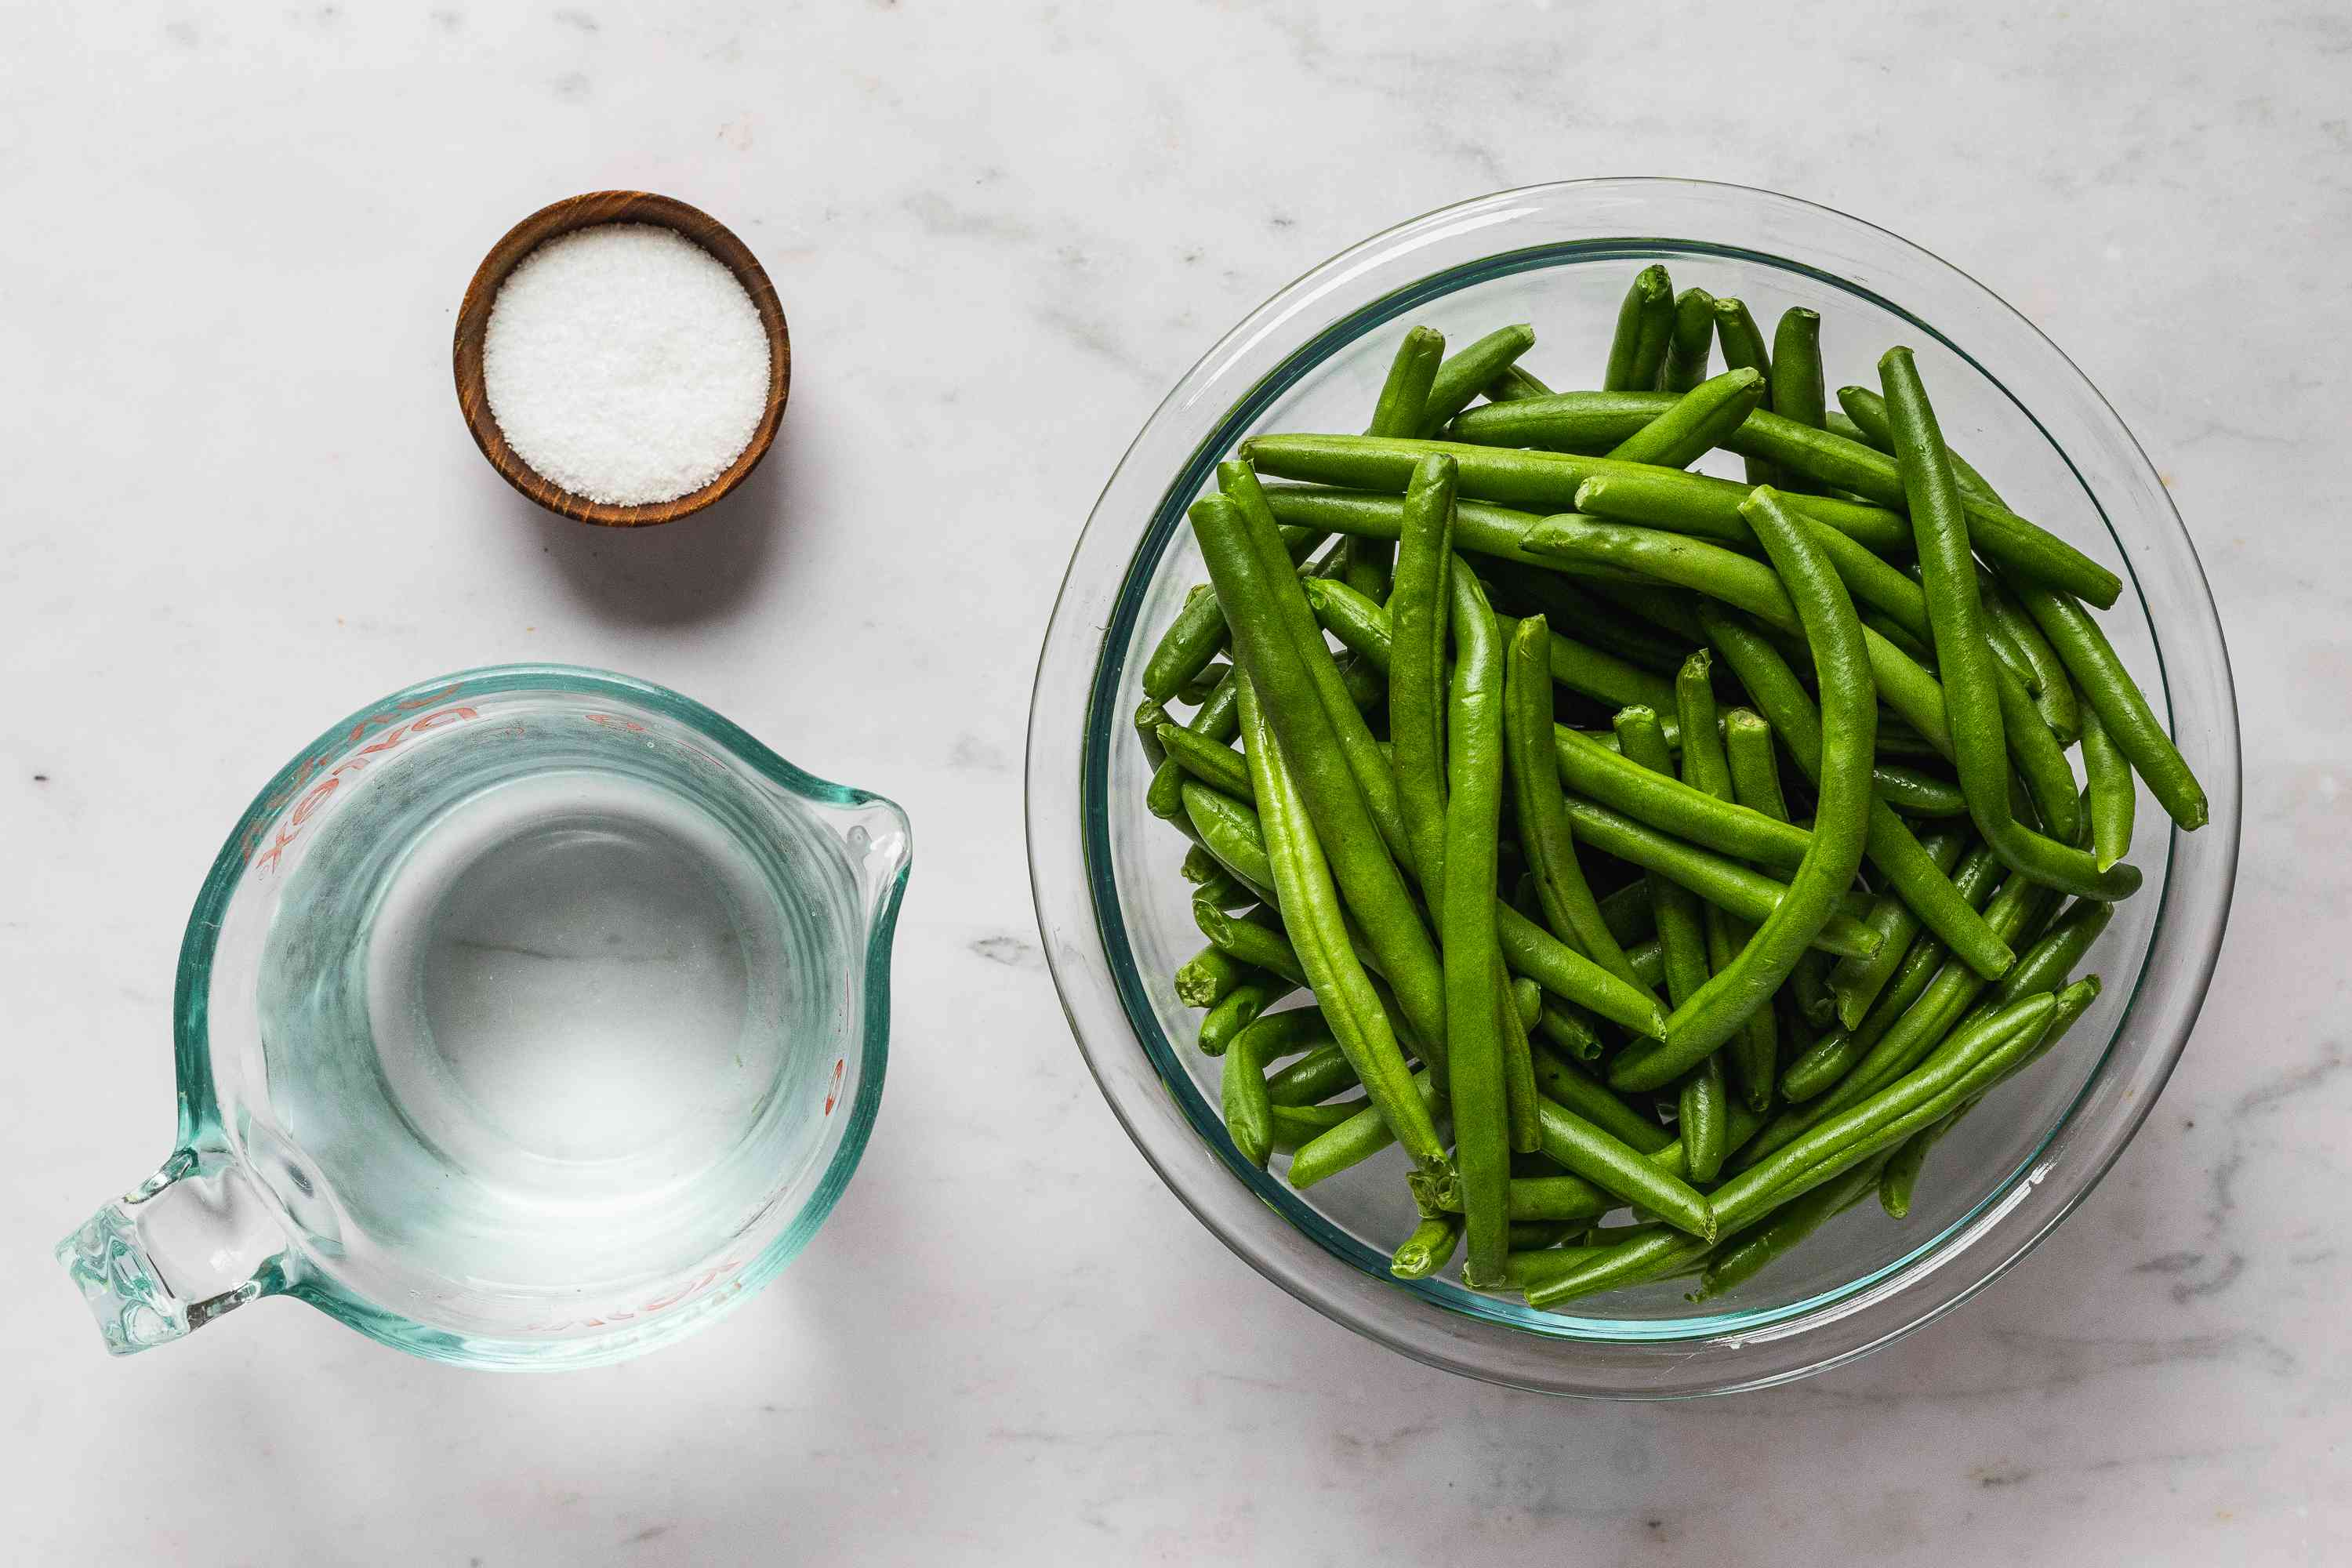 Lacto-Fermented Green Beans ingredients